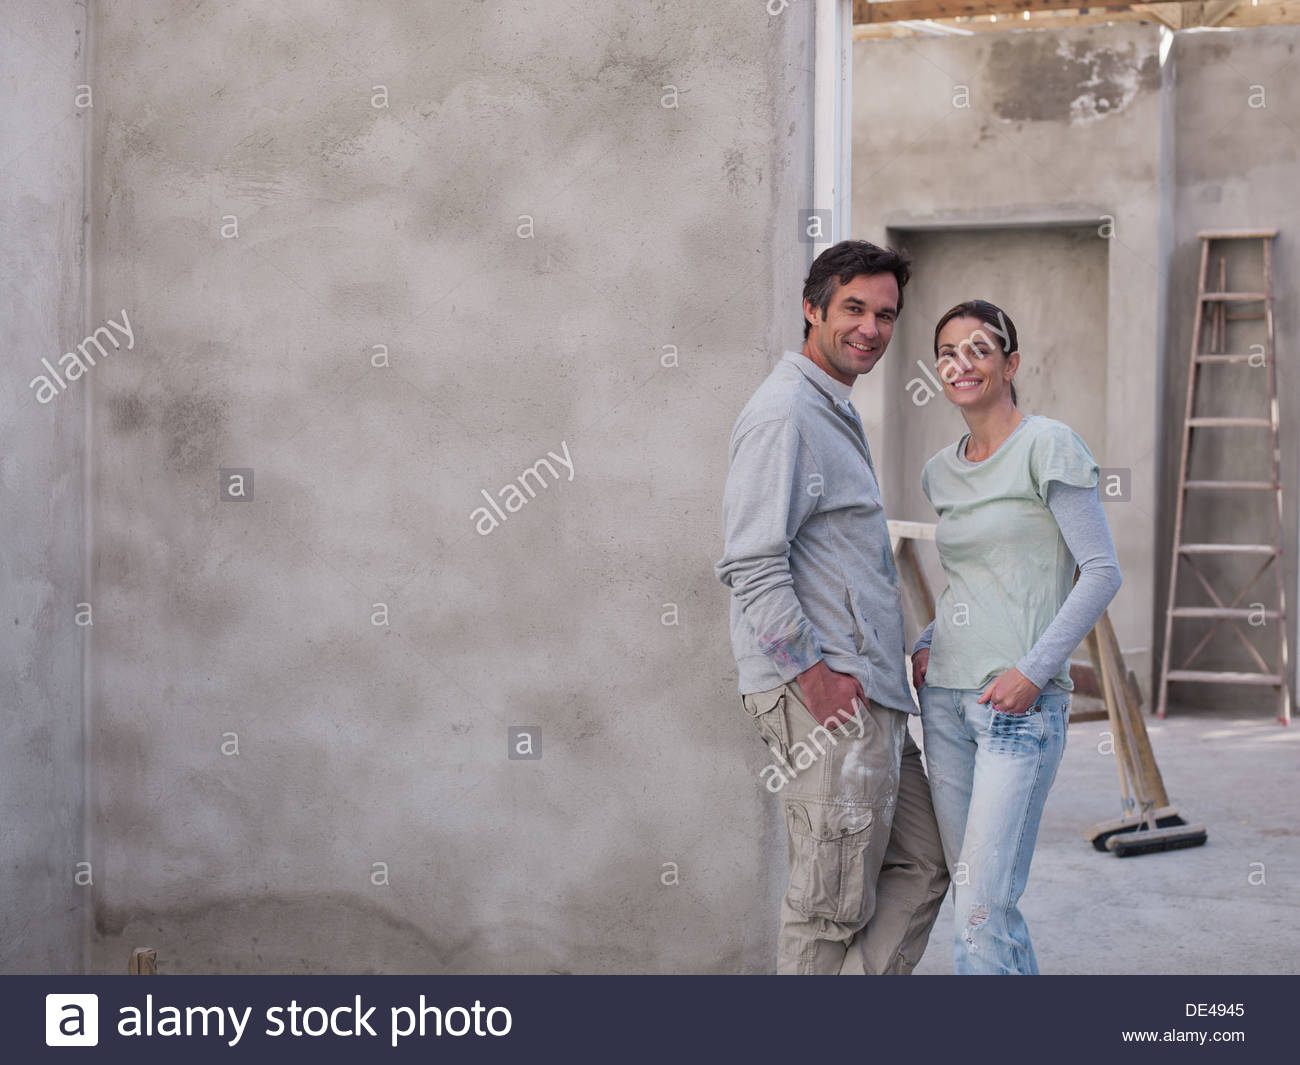 Couple in house under construction - Stock Image